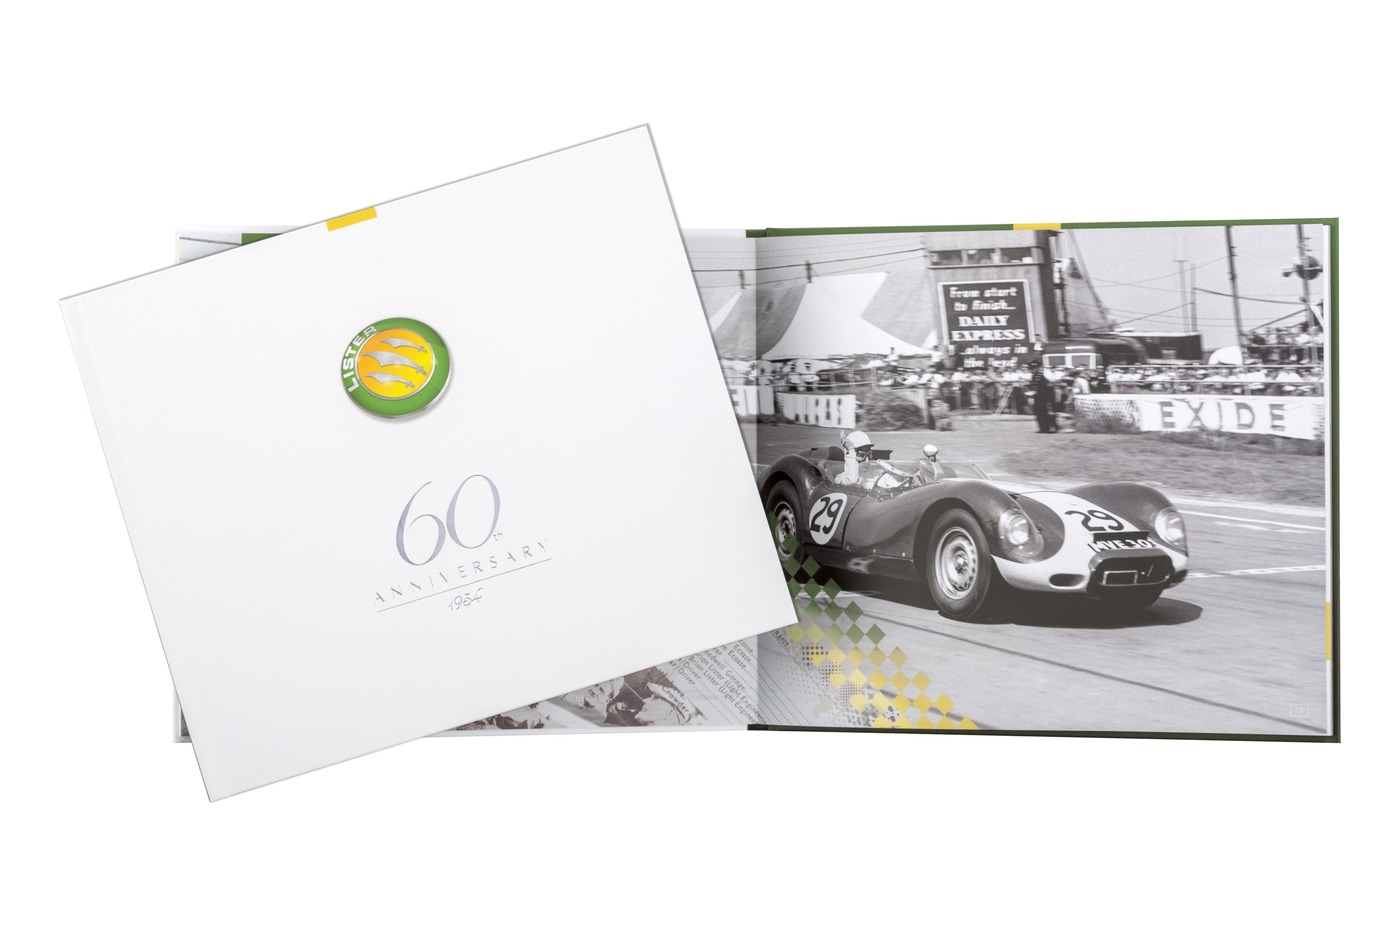 Lister 60th Anniversary Book